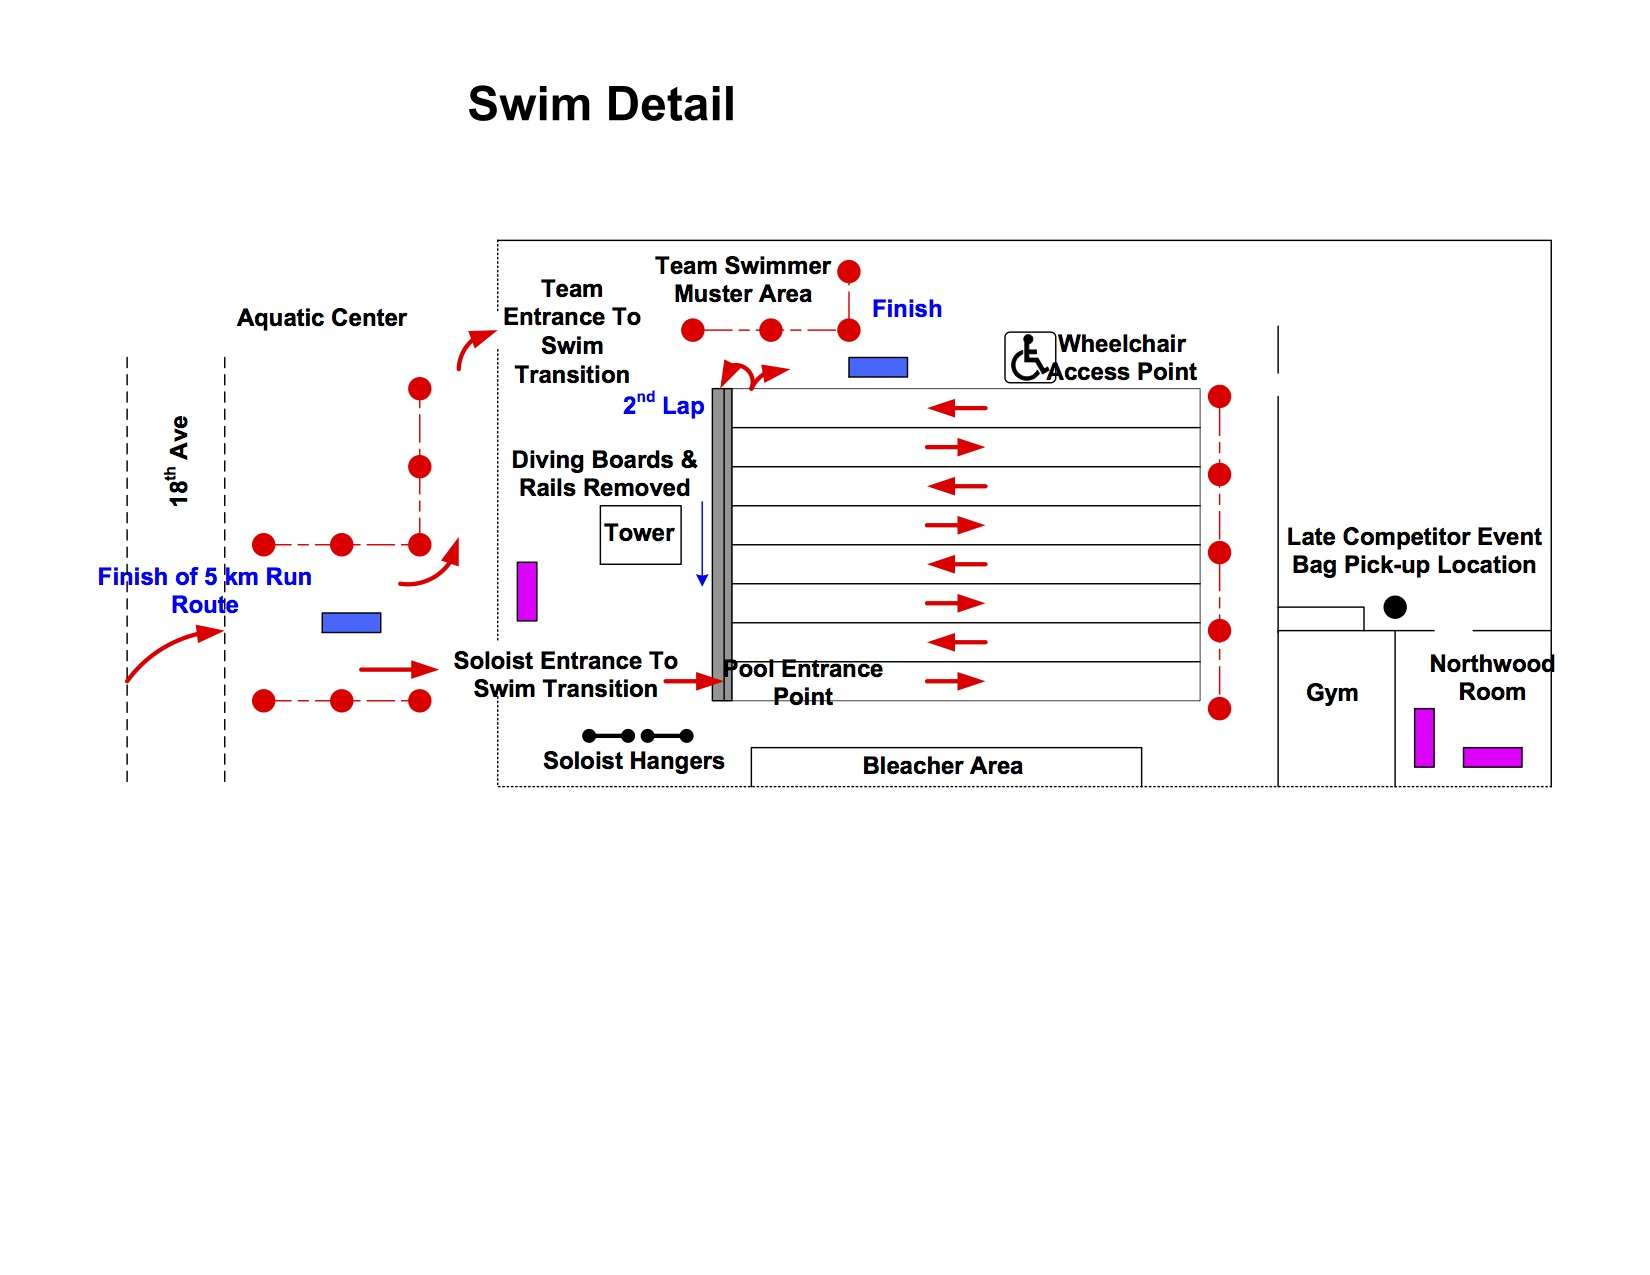 pg_iceman_event_swim_venue_detail